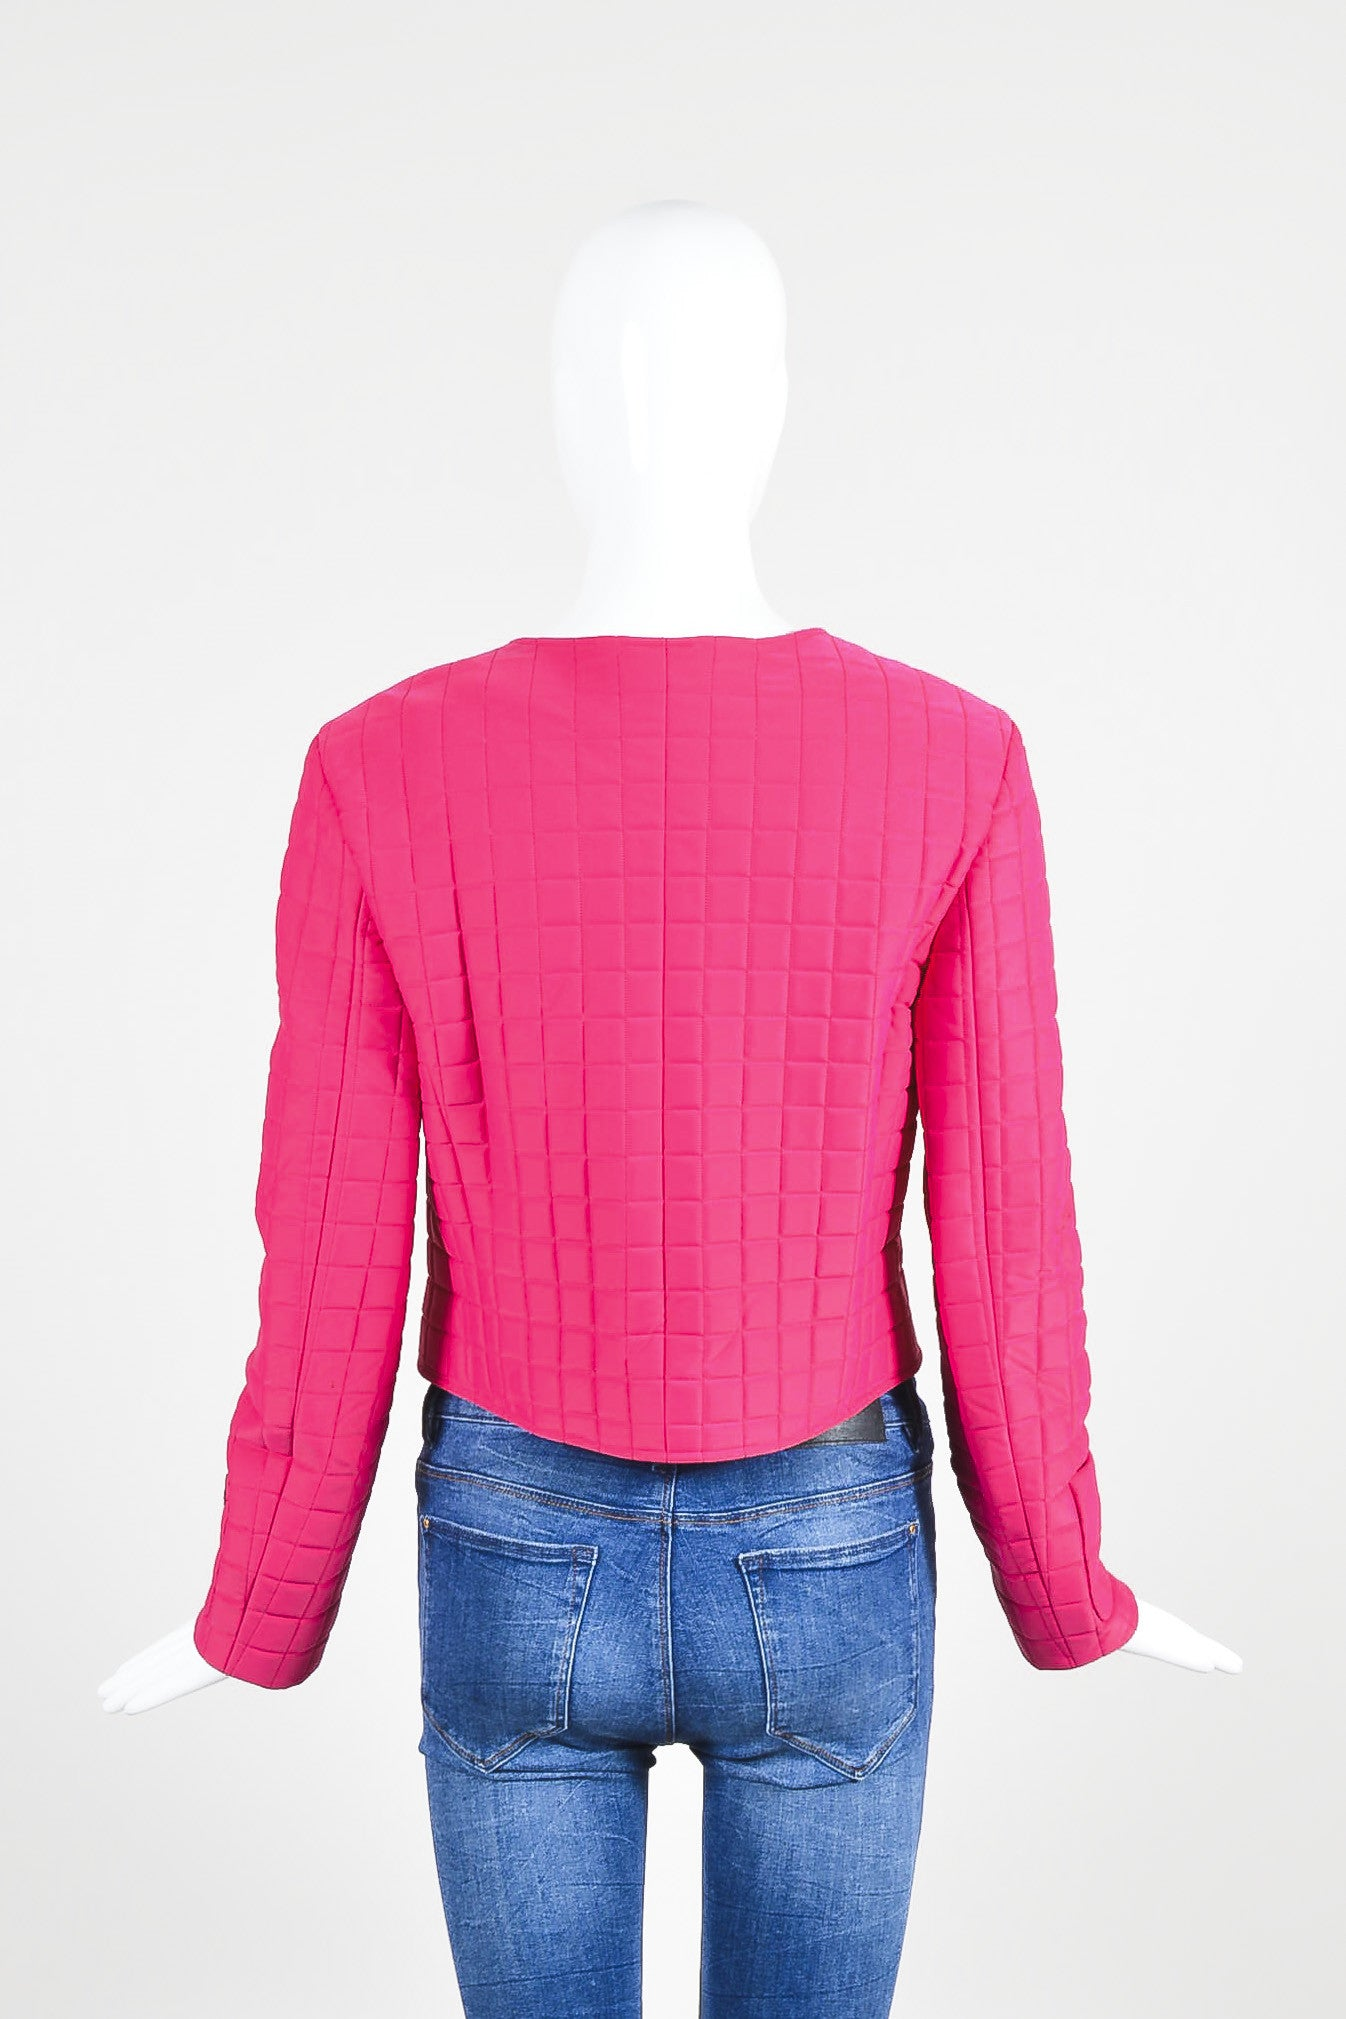 Hot Pink Chanel Padded Nylon Quilted Jacket Backview